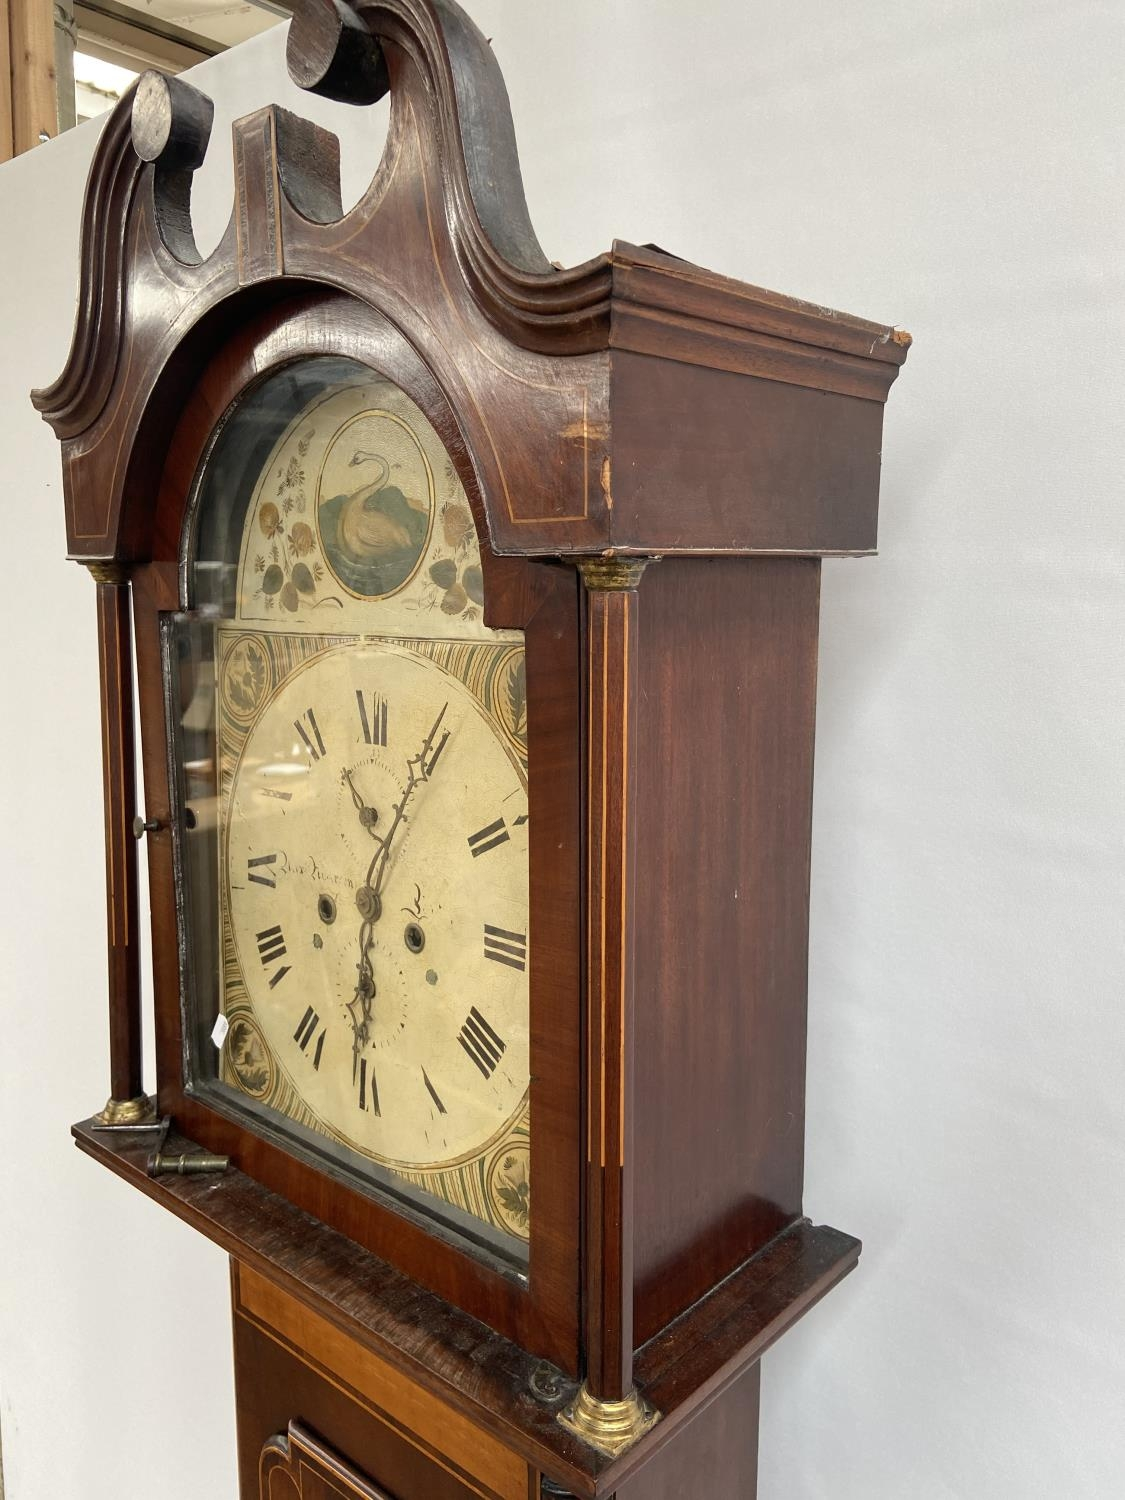 A 19th century Grandfather clock in a working condition [24x44x24cm] - Image 10 of 12